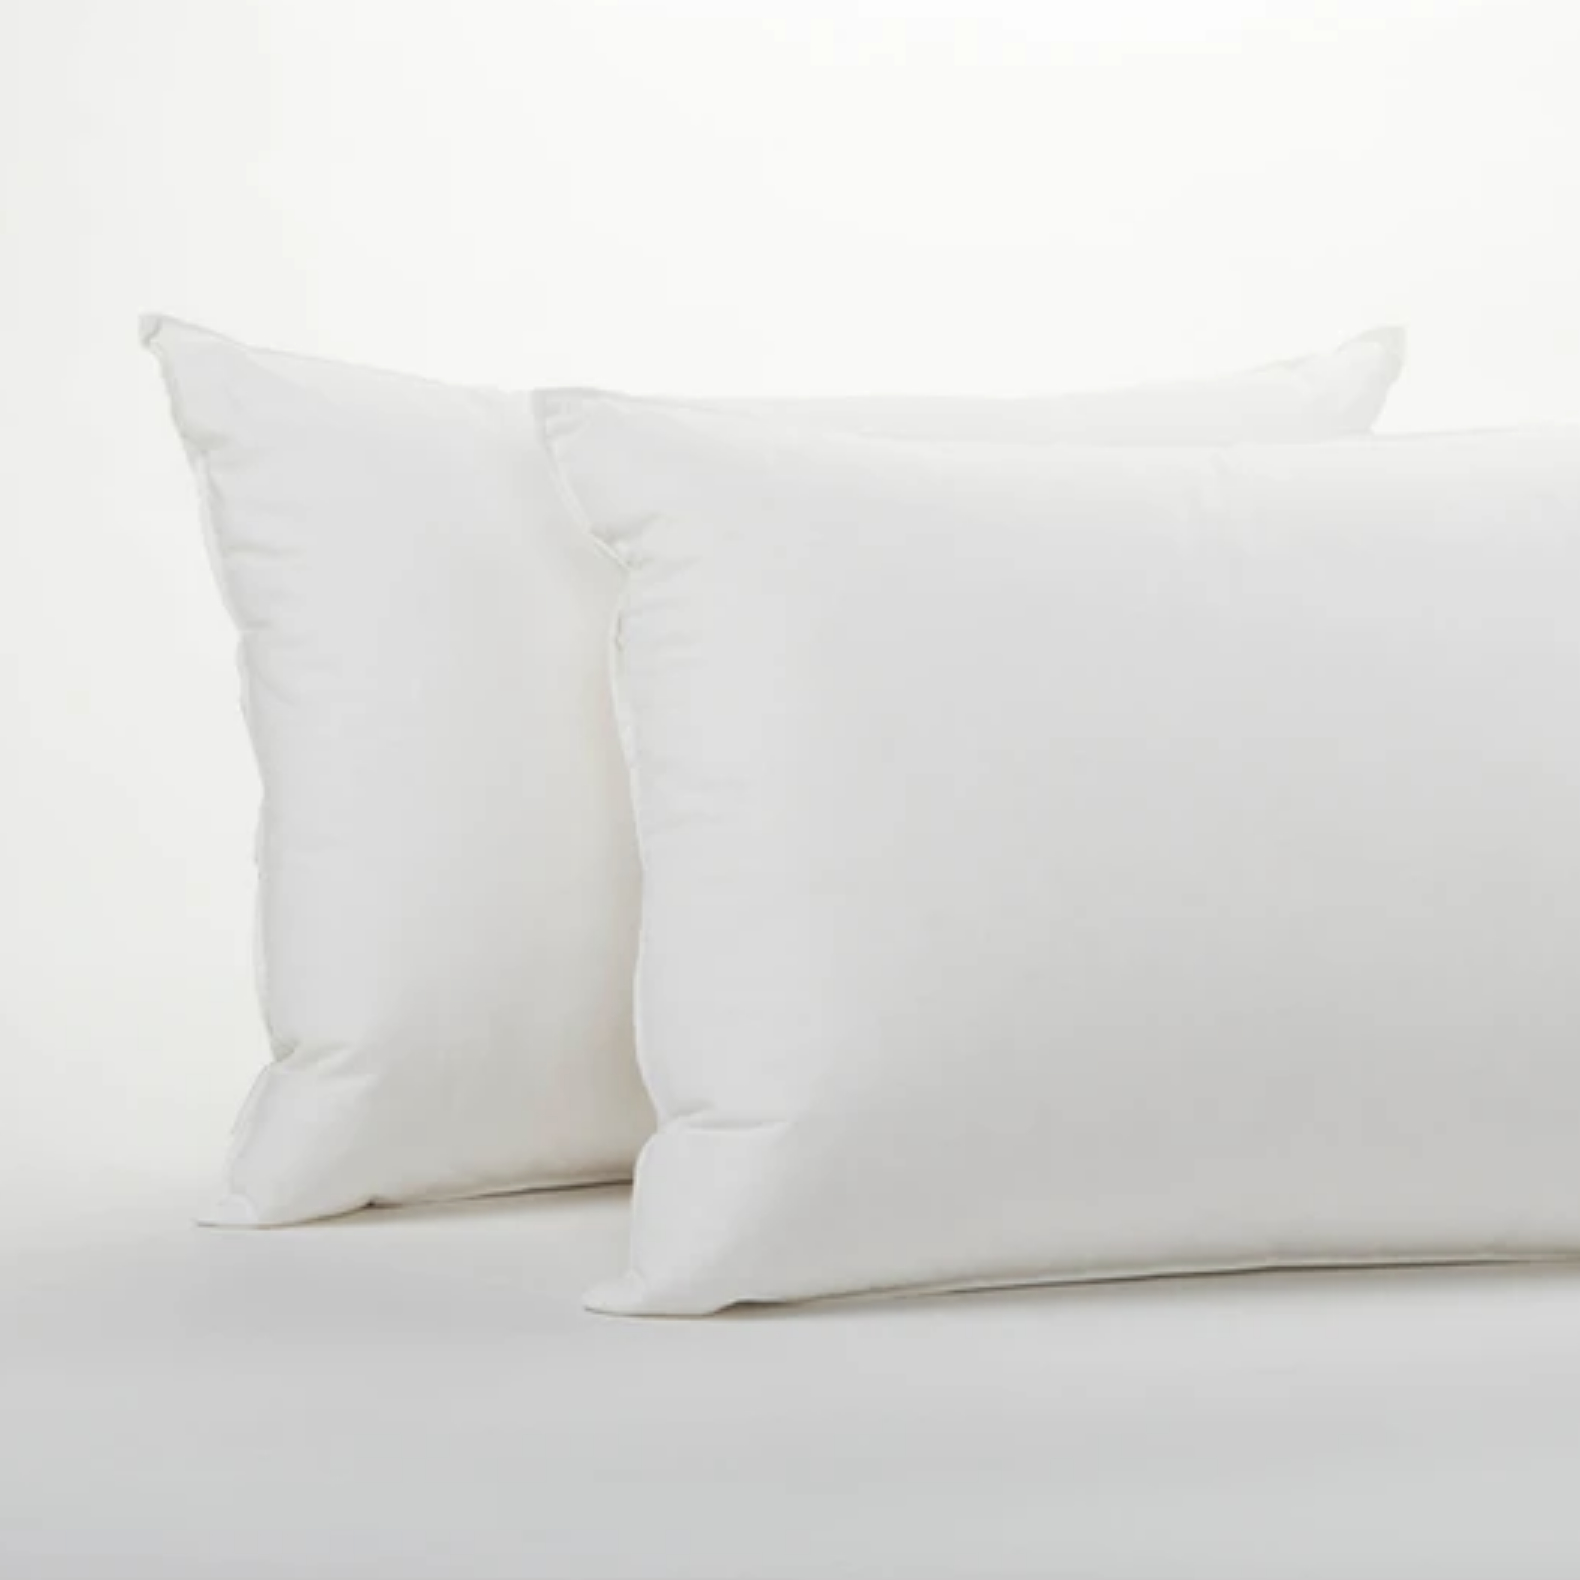 down-pillow-2up